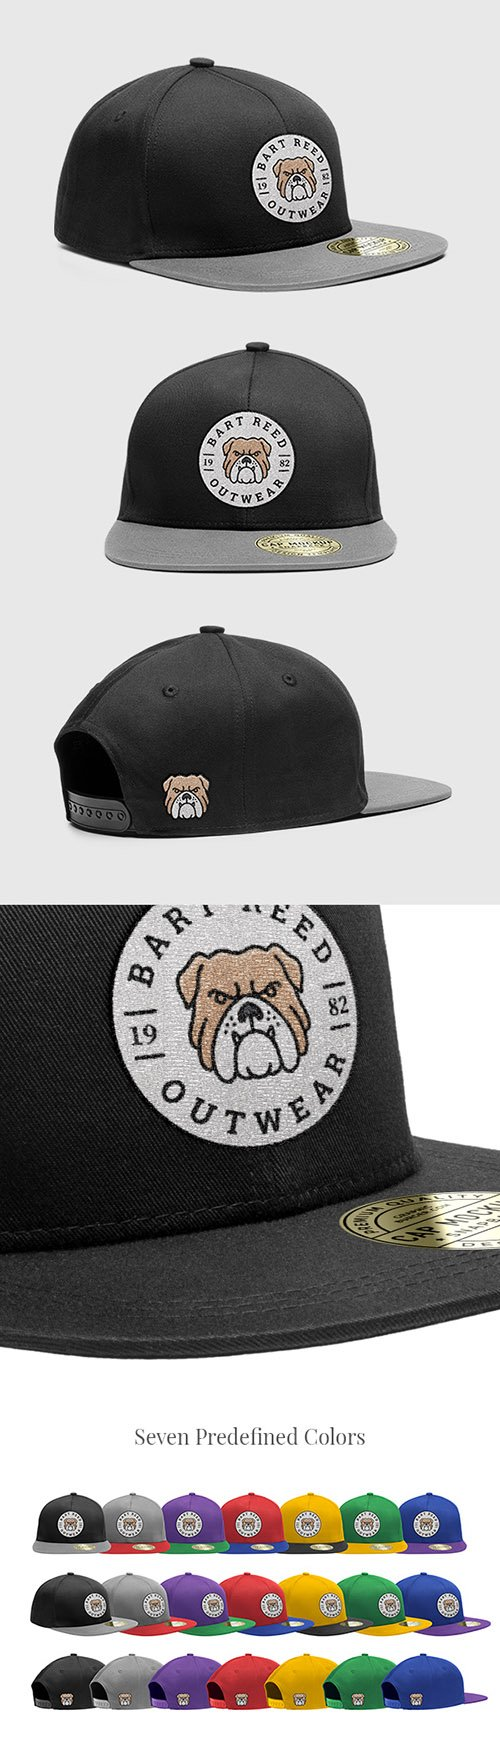 PSD Mock-Up - Snapback Cap